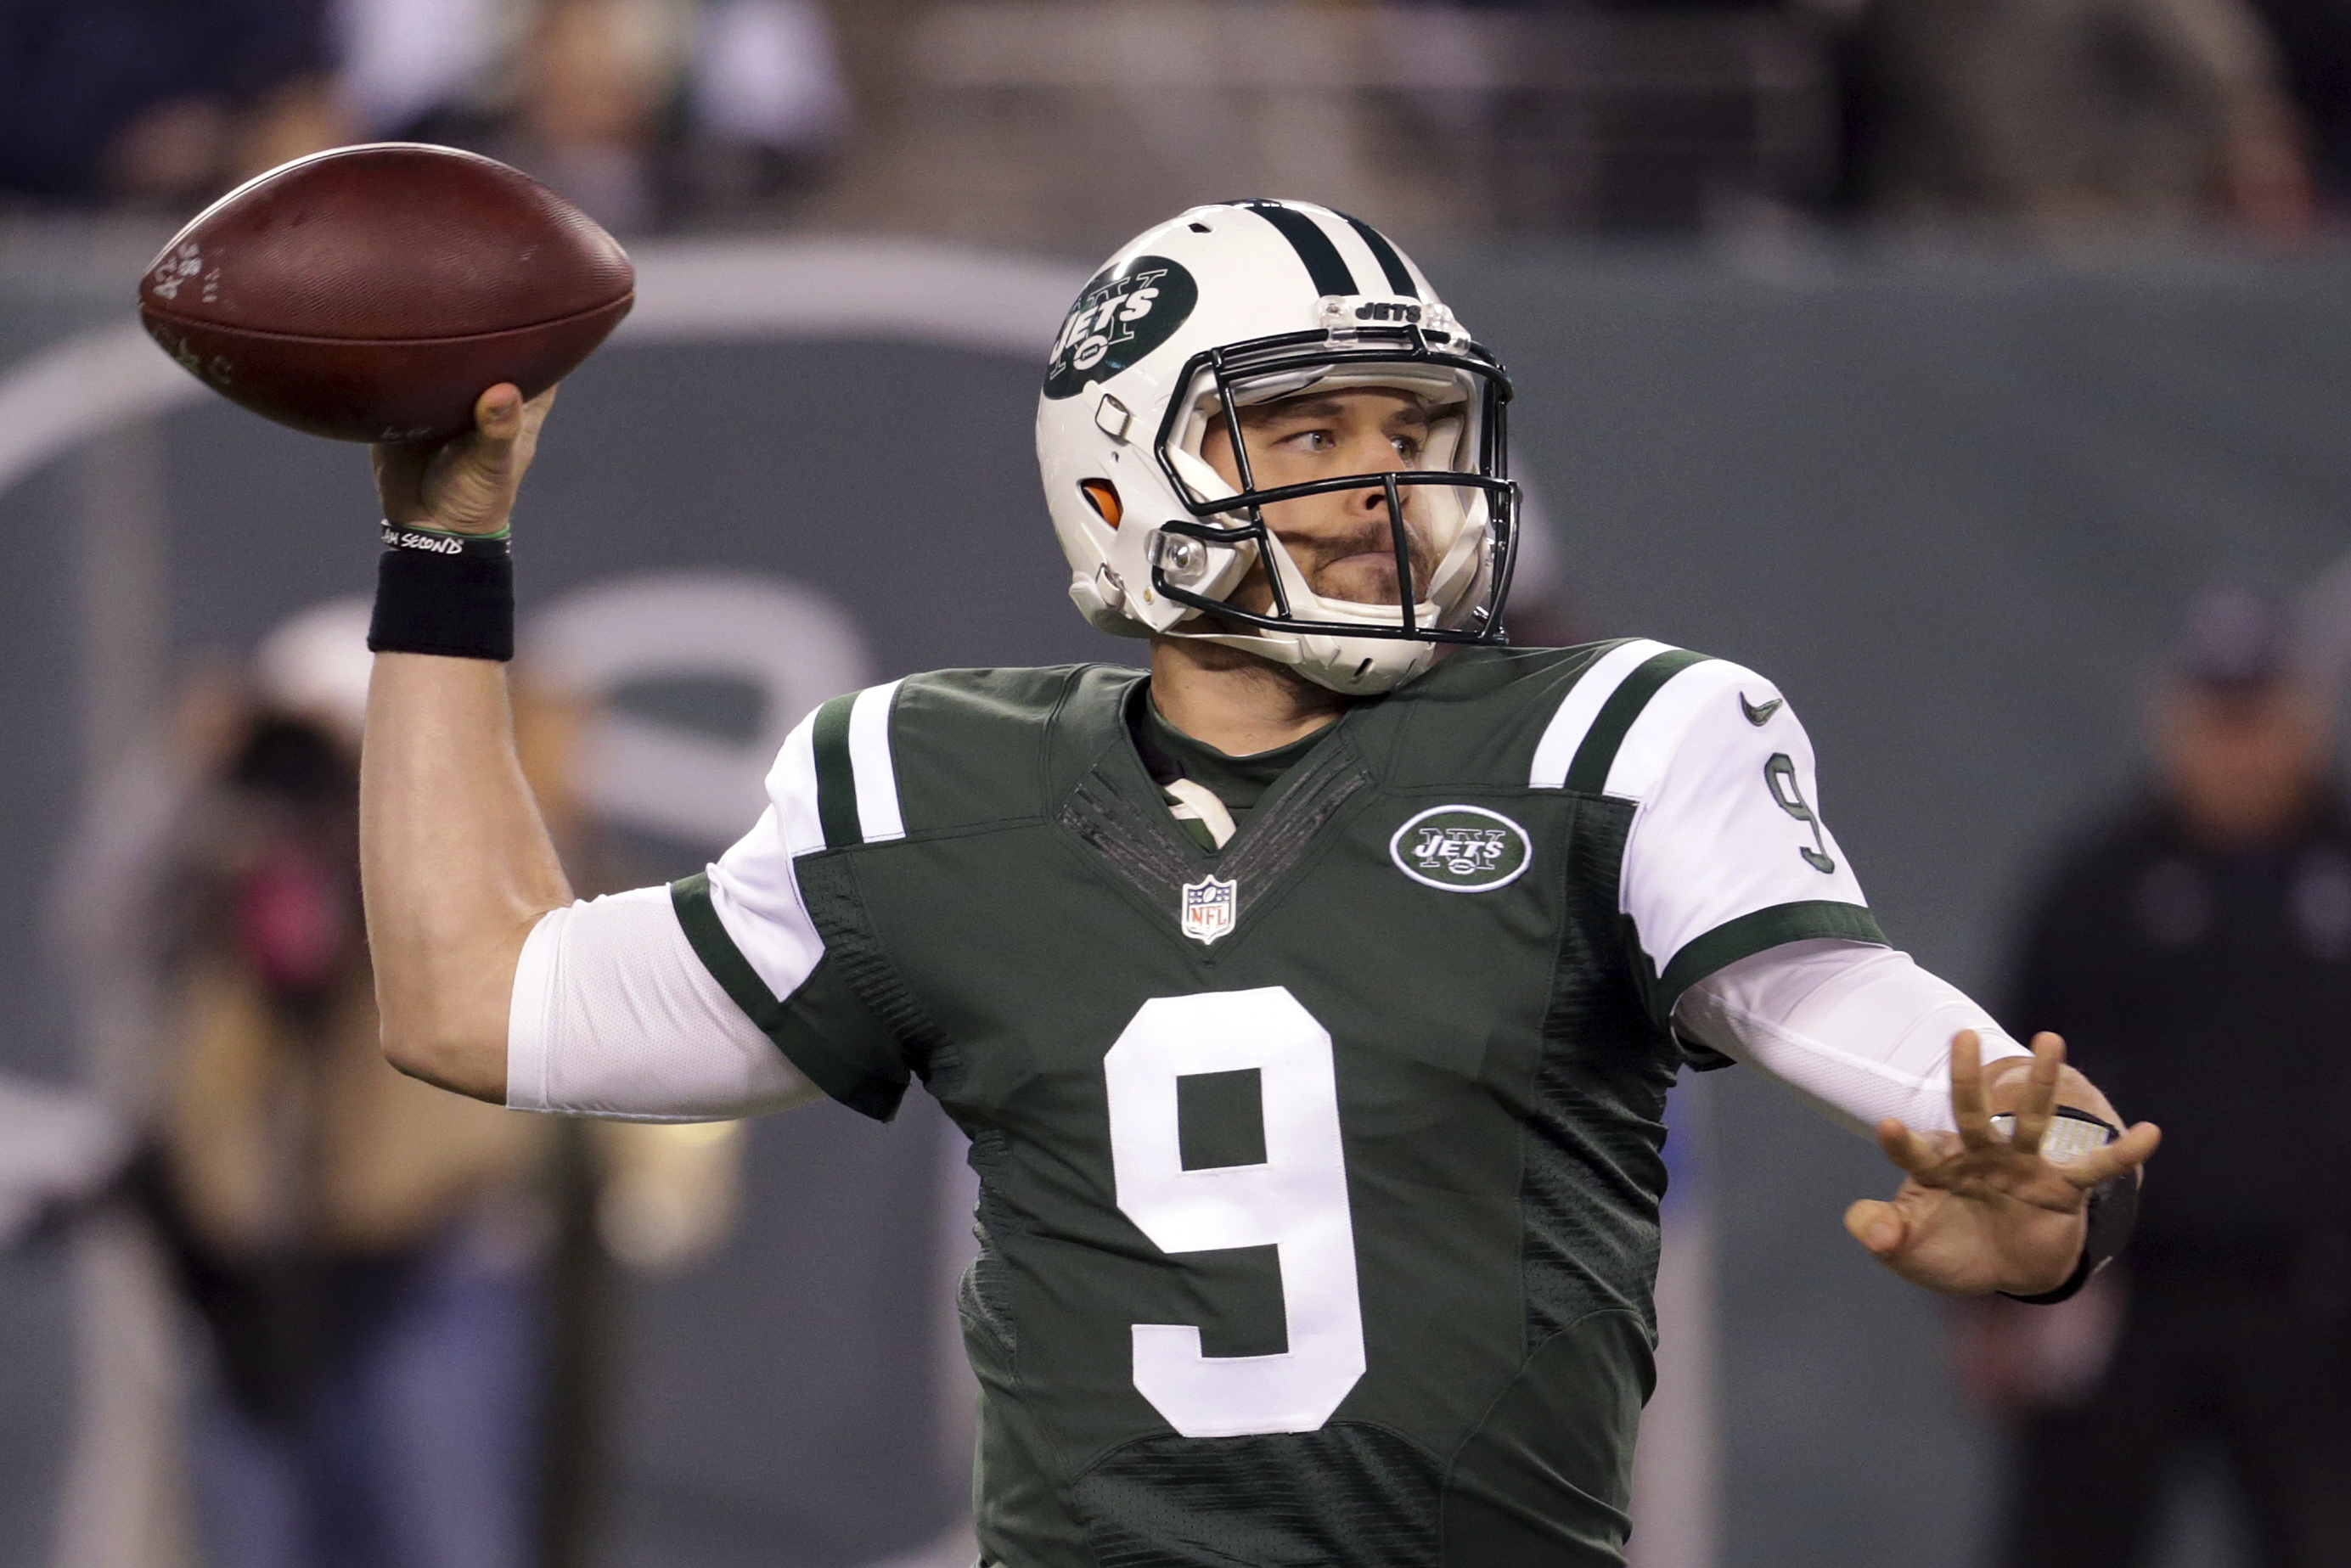 FILE - In this Monday, Dec. 5, 2016 file photo, New York Jets quarterback Bryce Petty looks to pass against the Indianapolis Colts during the second half of an NFL football game in East Rutherford, N.J. Bryce Petty went from roster bubble to starting quar